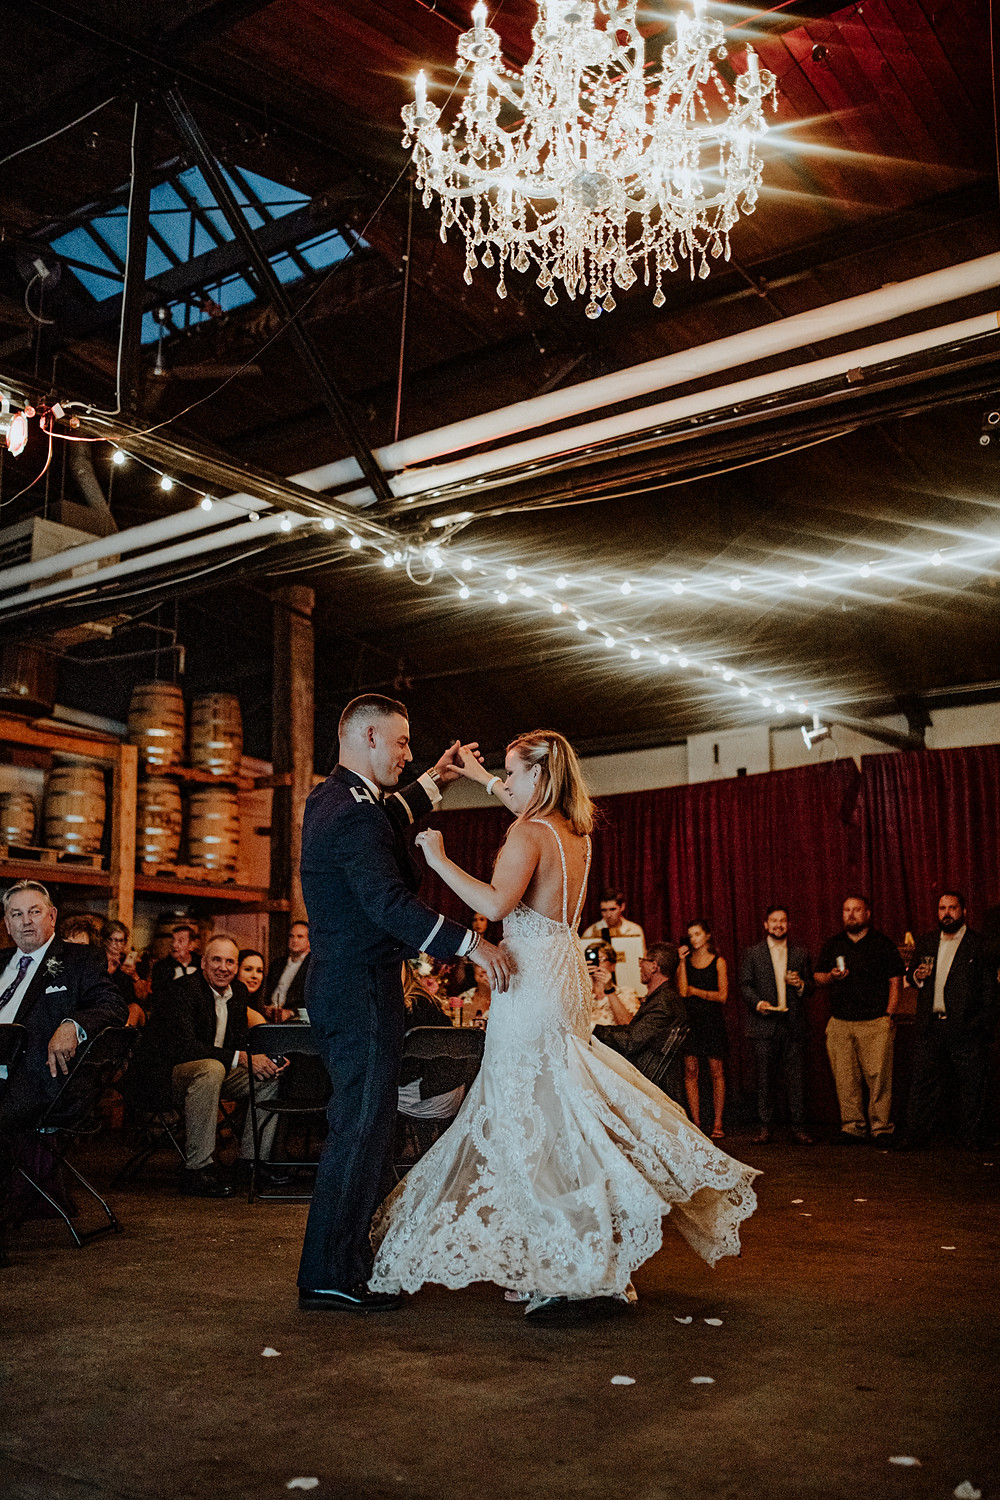 wedding photo at valentine's distillery. photo taken by little blue bird photography.